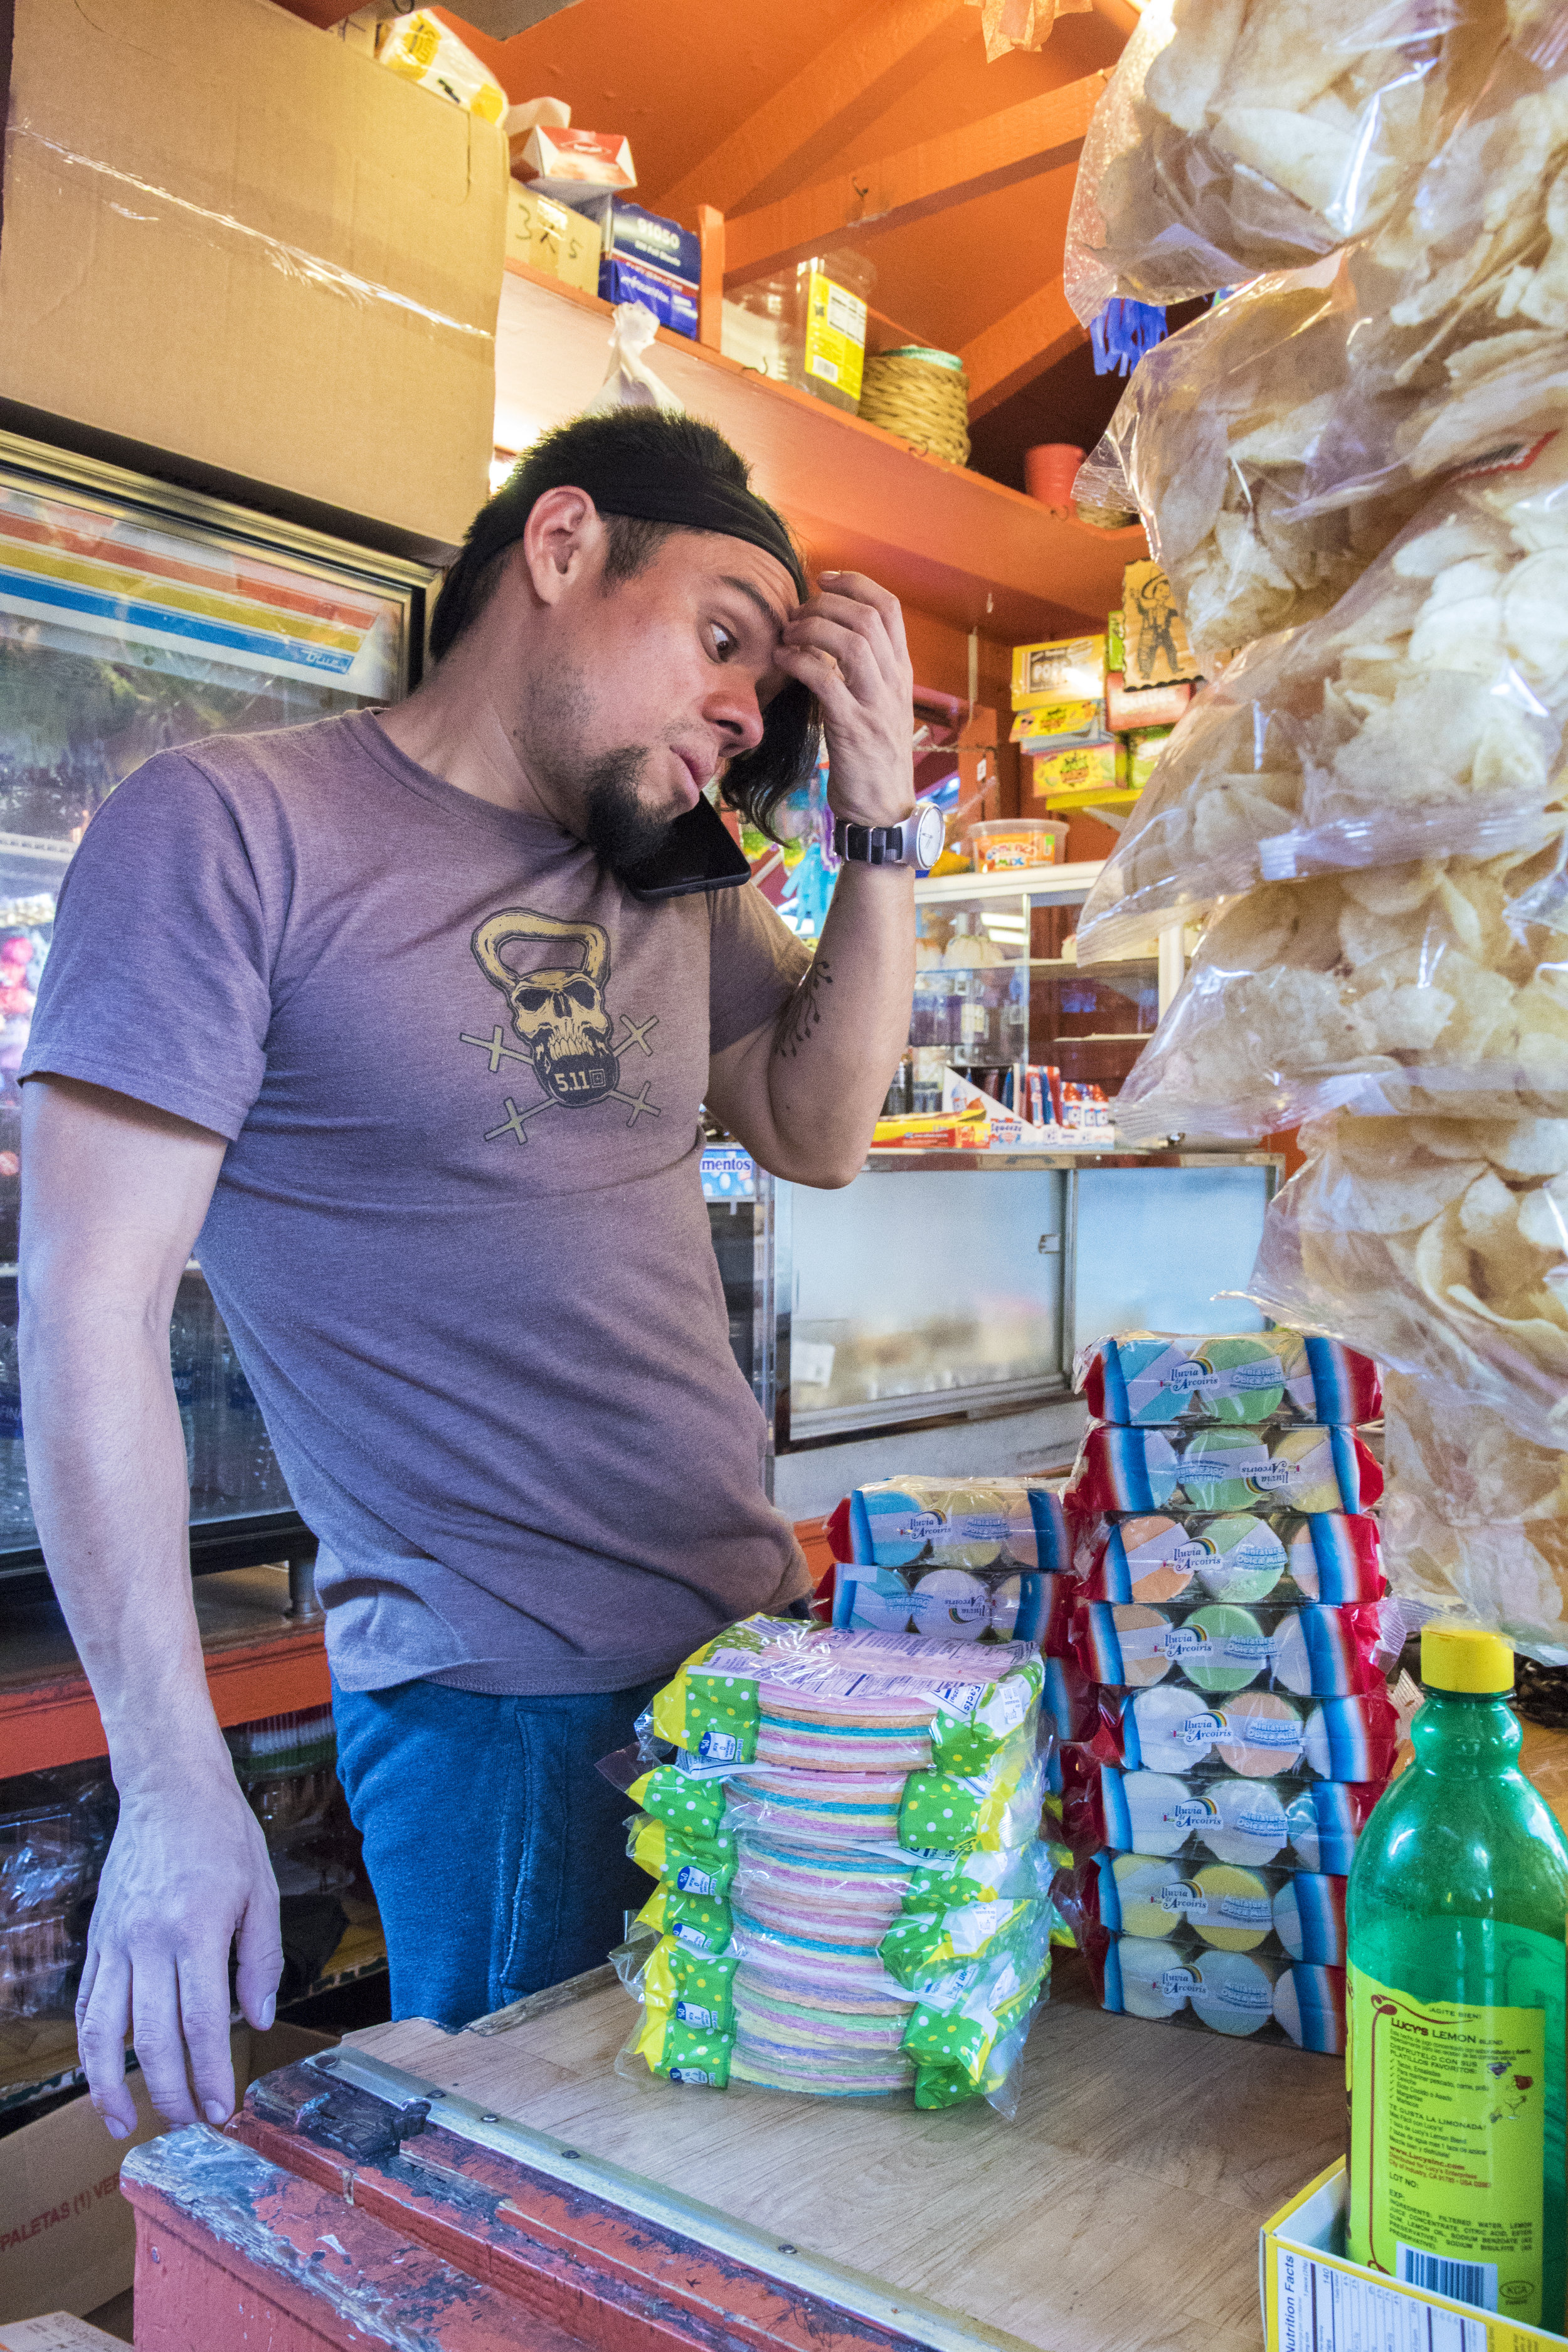 """Frank Franquis, an employee on Olvera Street, restocks his work space at Rudys Mexican Candy after an extremely busy weekend that he described as """"200-300%"""" more busy than usual, while taking a phone call from his boss where she told him that she would not be coming into work, on October 29, 2018. Although business booms during the Dia De Los Muertos celebration, most other times of the year are slow. Frank has been working at this shop for the last 3 years and works from 7 am to 8 pm everyday at both Rudys Mexican Candy and Munoz Mexican Store. Even in that short time has seen a dramatic decrease in customers. He believes it is due to the neighboring homeless population who often steal items from the shops. Although he is often a victim of theft, Franquis does not hold a grudge against the homeless. As he knows they are just doing what they need to do to get by. (Zane Meyer-Thornton/Corsair Photo)"""